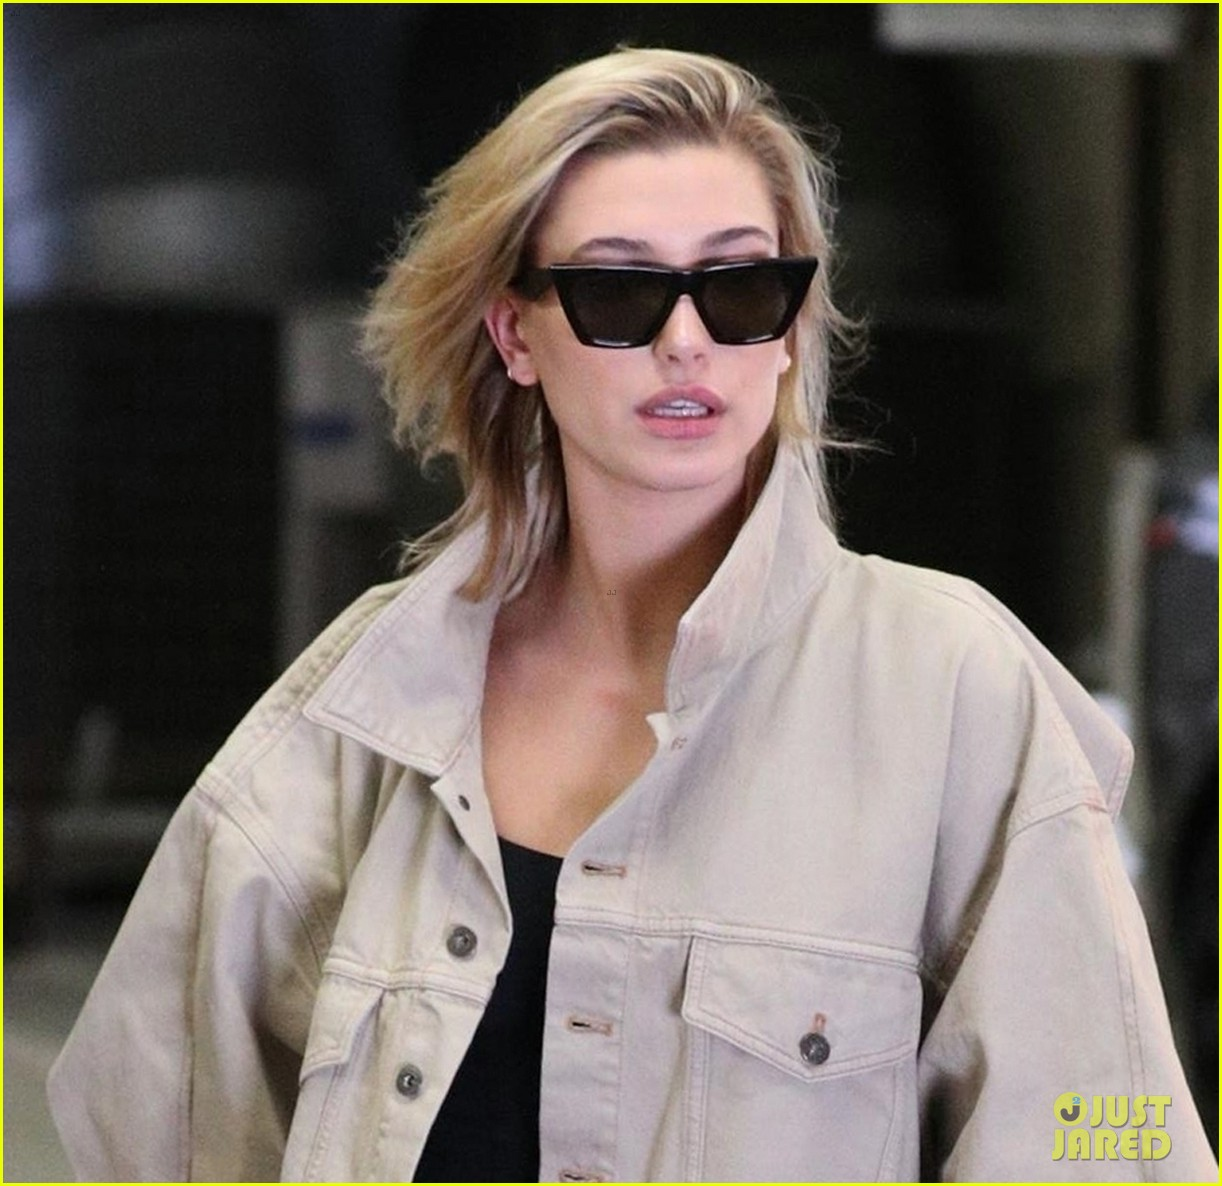 hailey baldwin shows off her casual street style in oversized jacket 044046365